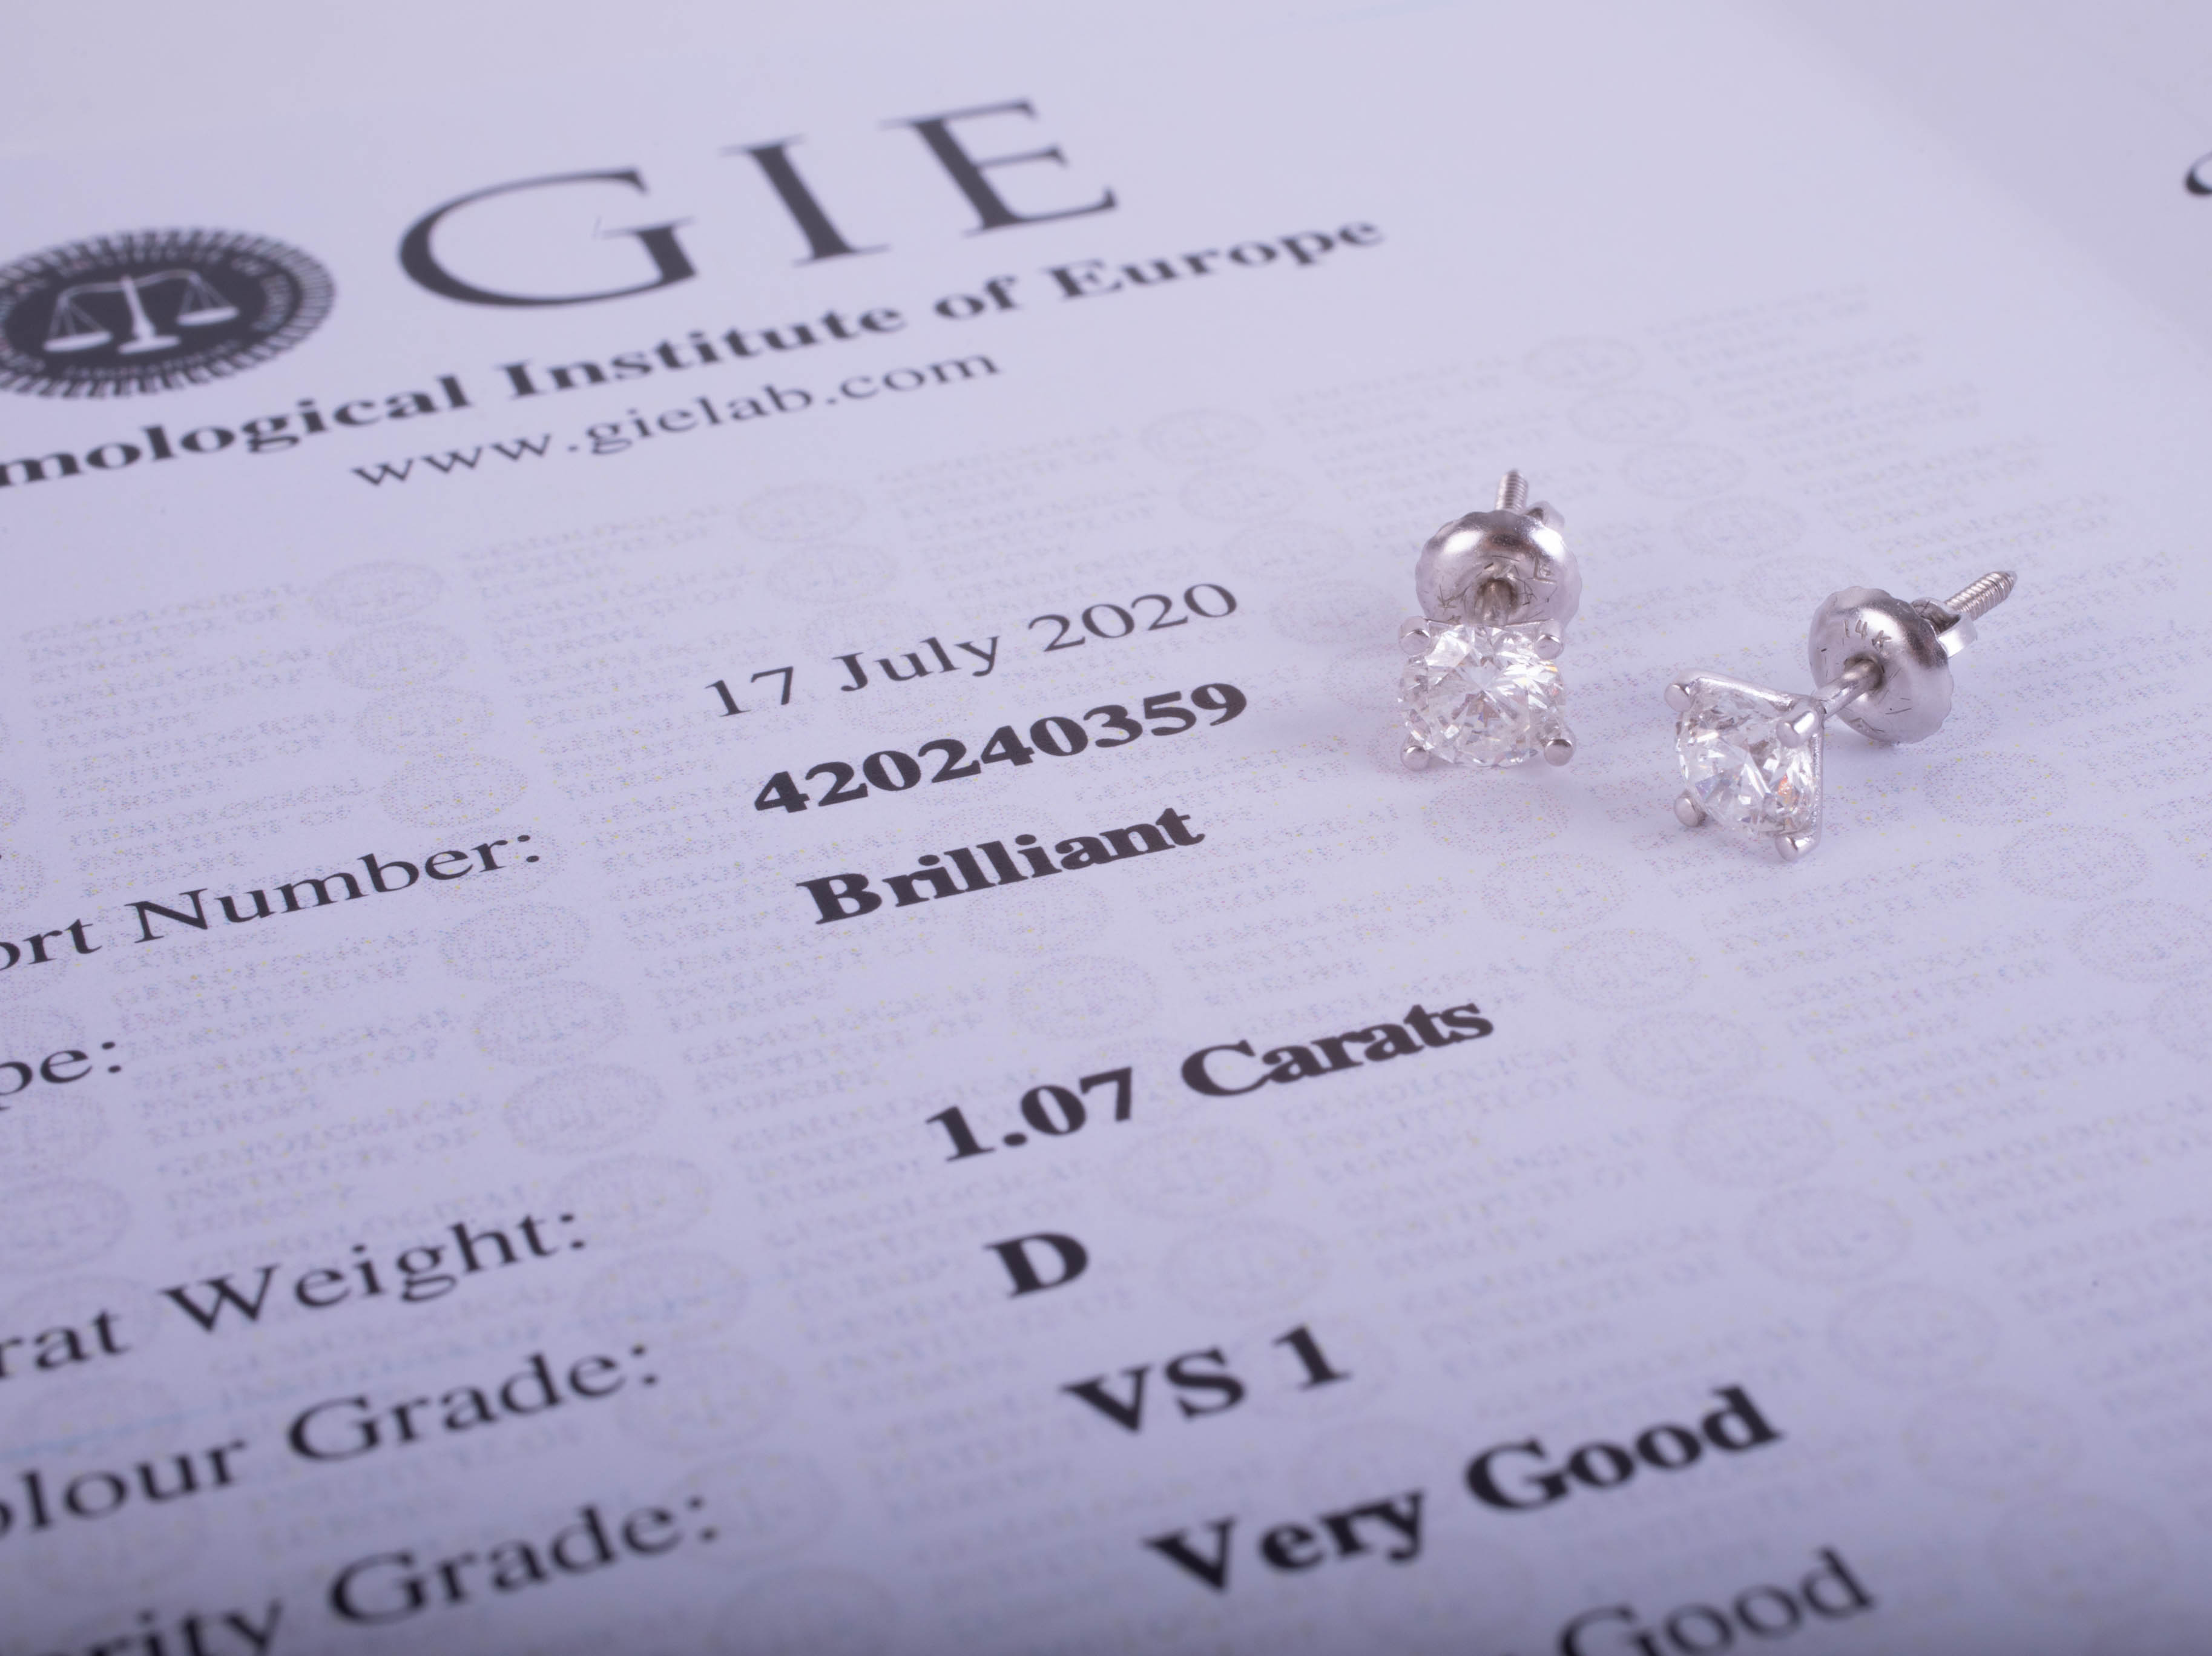 Lot 027 - A pair of diamond earrings, with G.I.E. certificate indicating total carat weight 1.07cts, colour D,